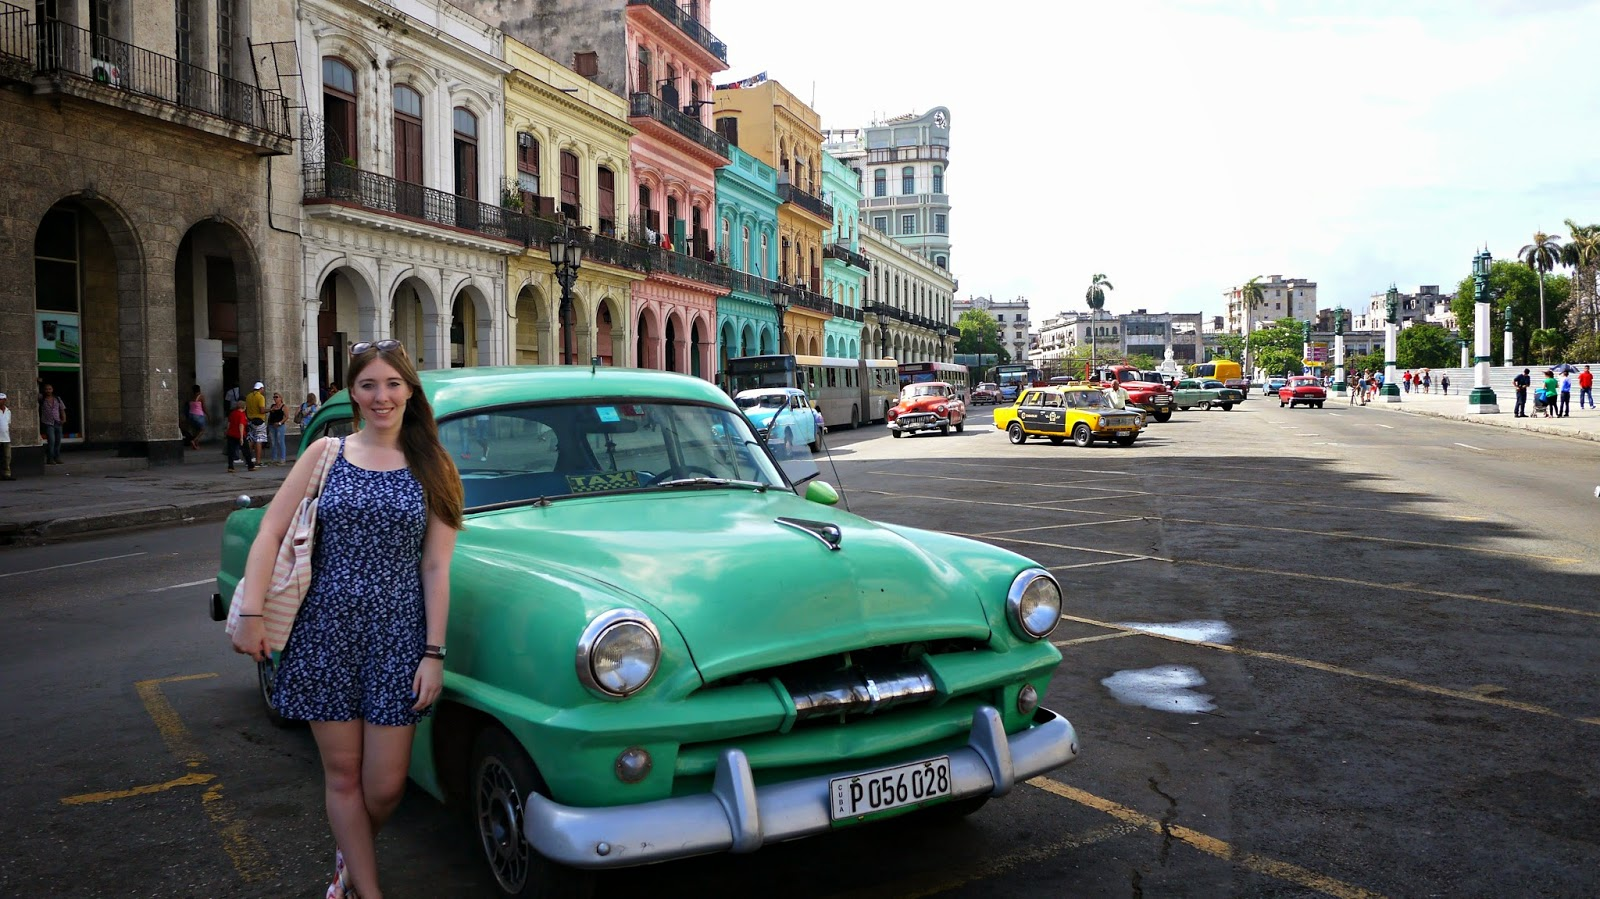 Old cars and colourful buildings in Havana Cuba